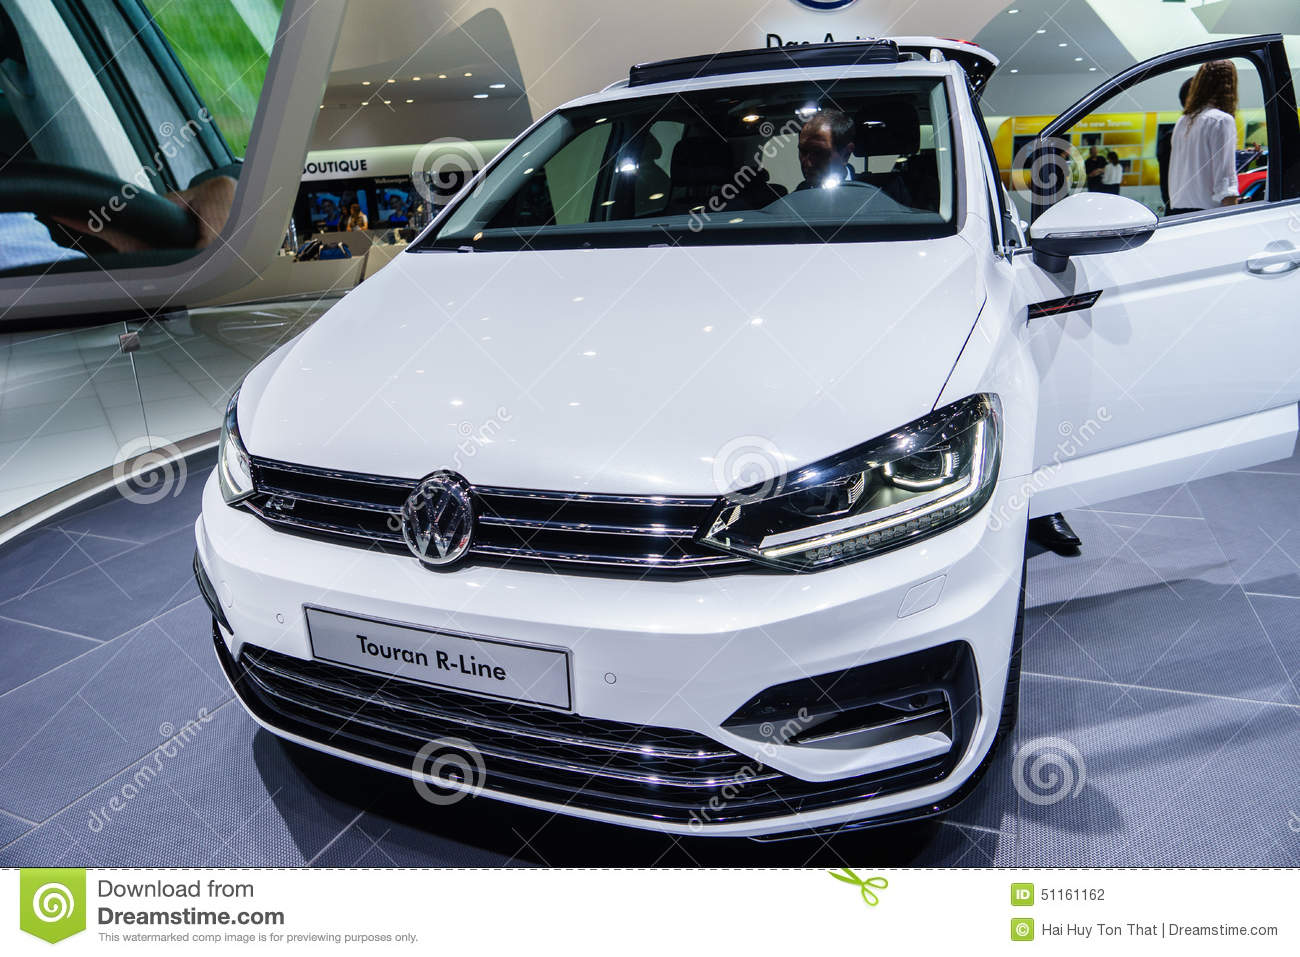 volkswagen touran r line motor show geneve 2015 editorial photography image 51161162. Black Bedroom Furniture Sets. Home Design Ideas